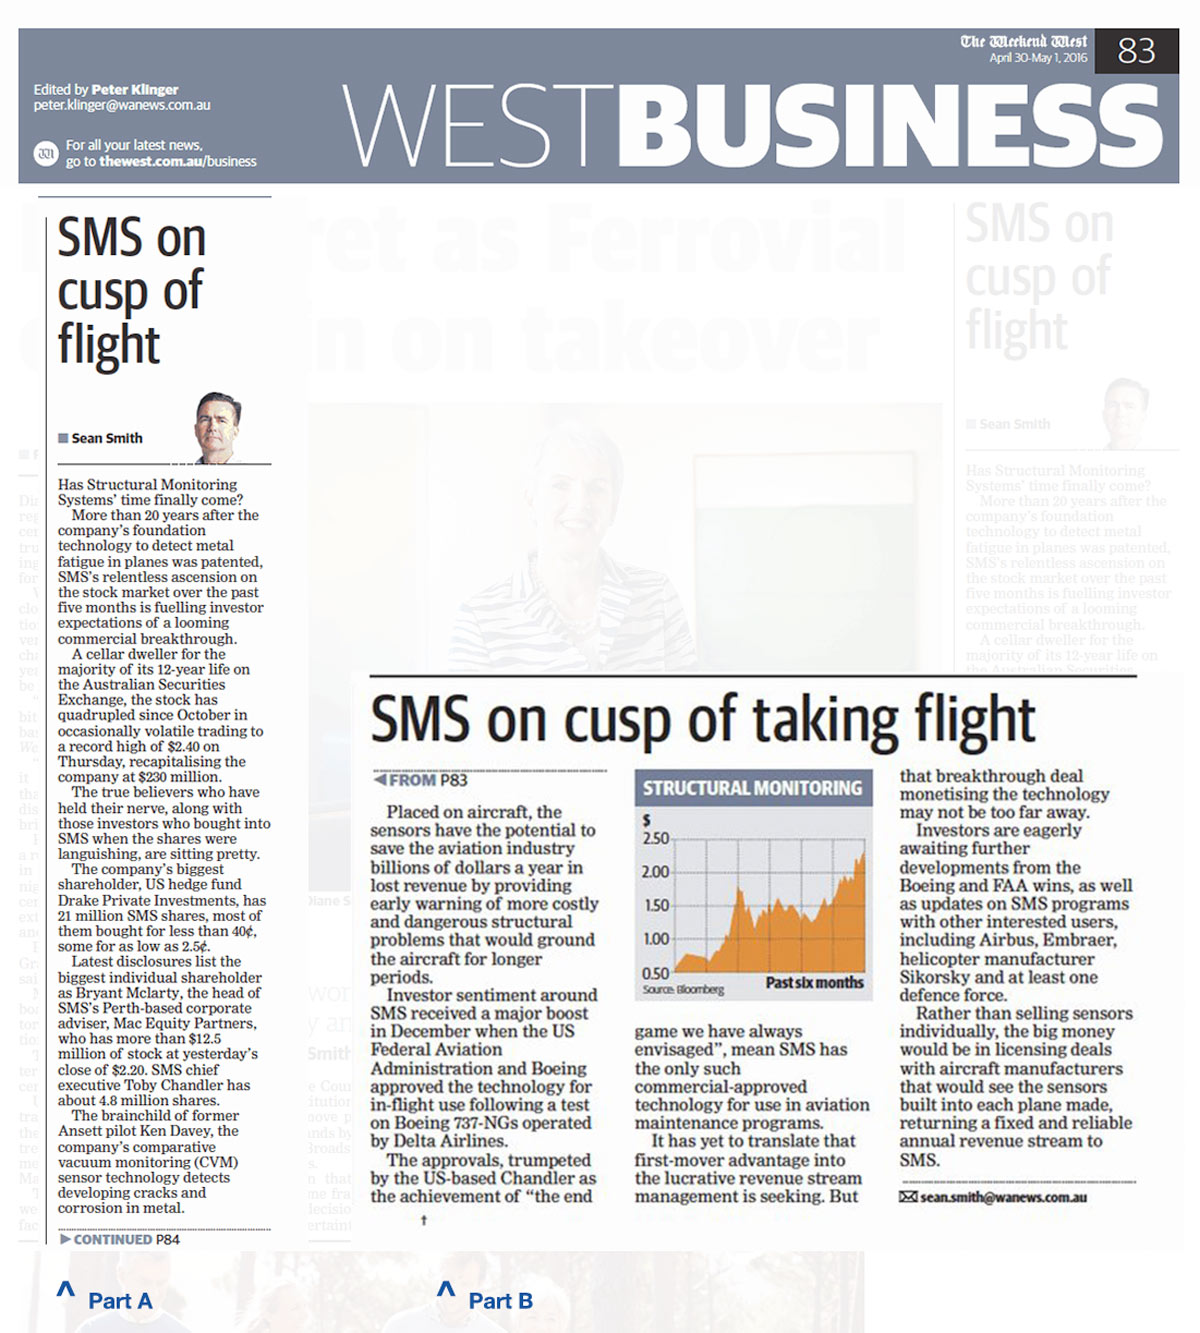 Structural Monitoring Systems - West Business Article